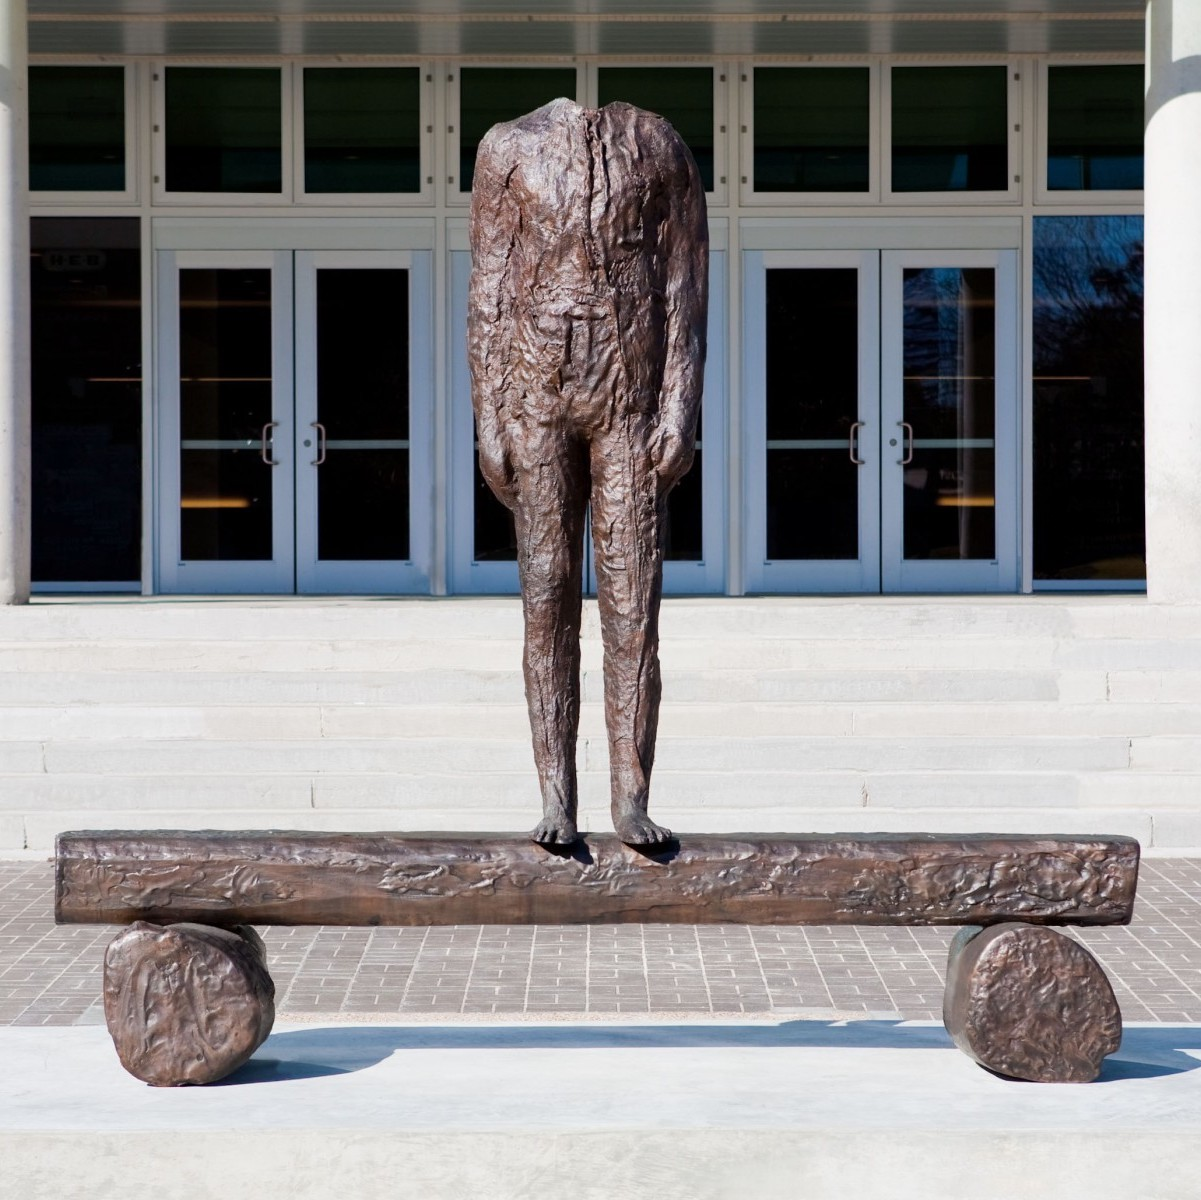 A headless figure stands on a flat surface supported by two wheels which look like tree trunks. The work is cast bronze and hollow when viewed from the other side